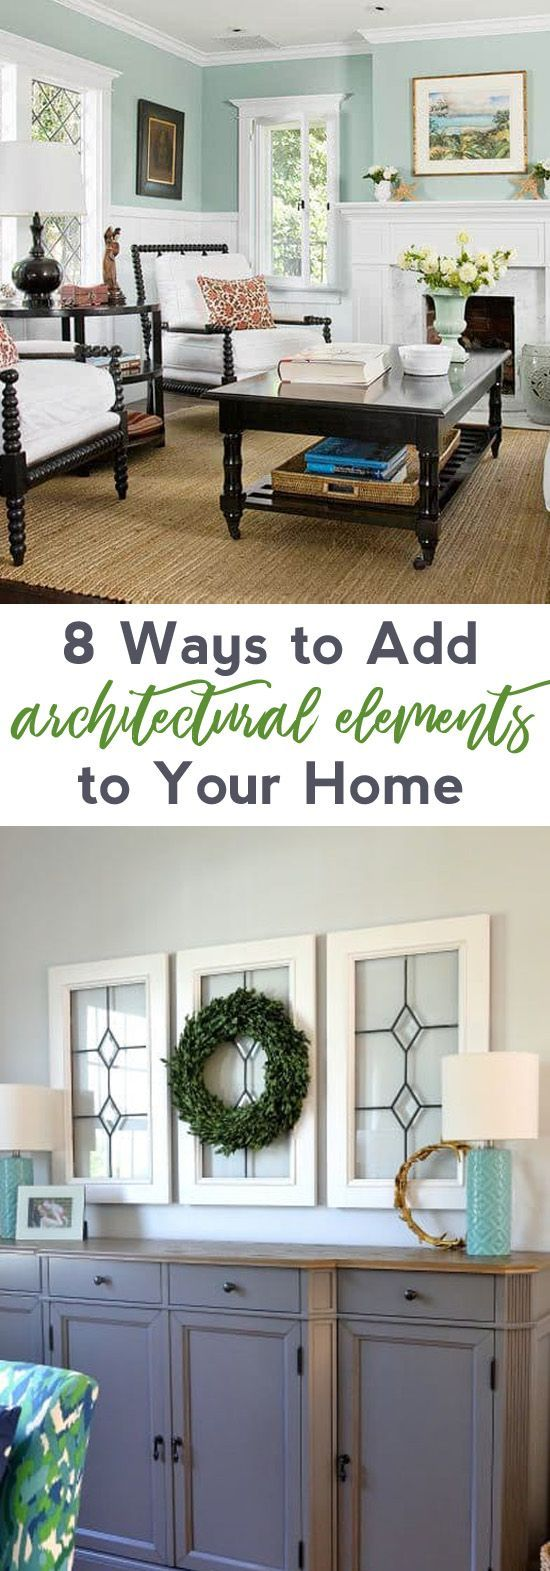 8 ways to add architectural elements to